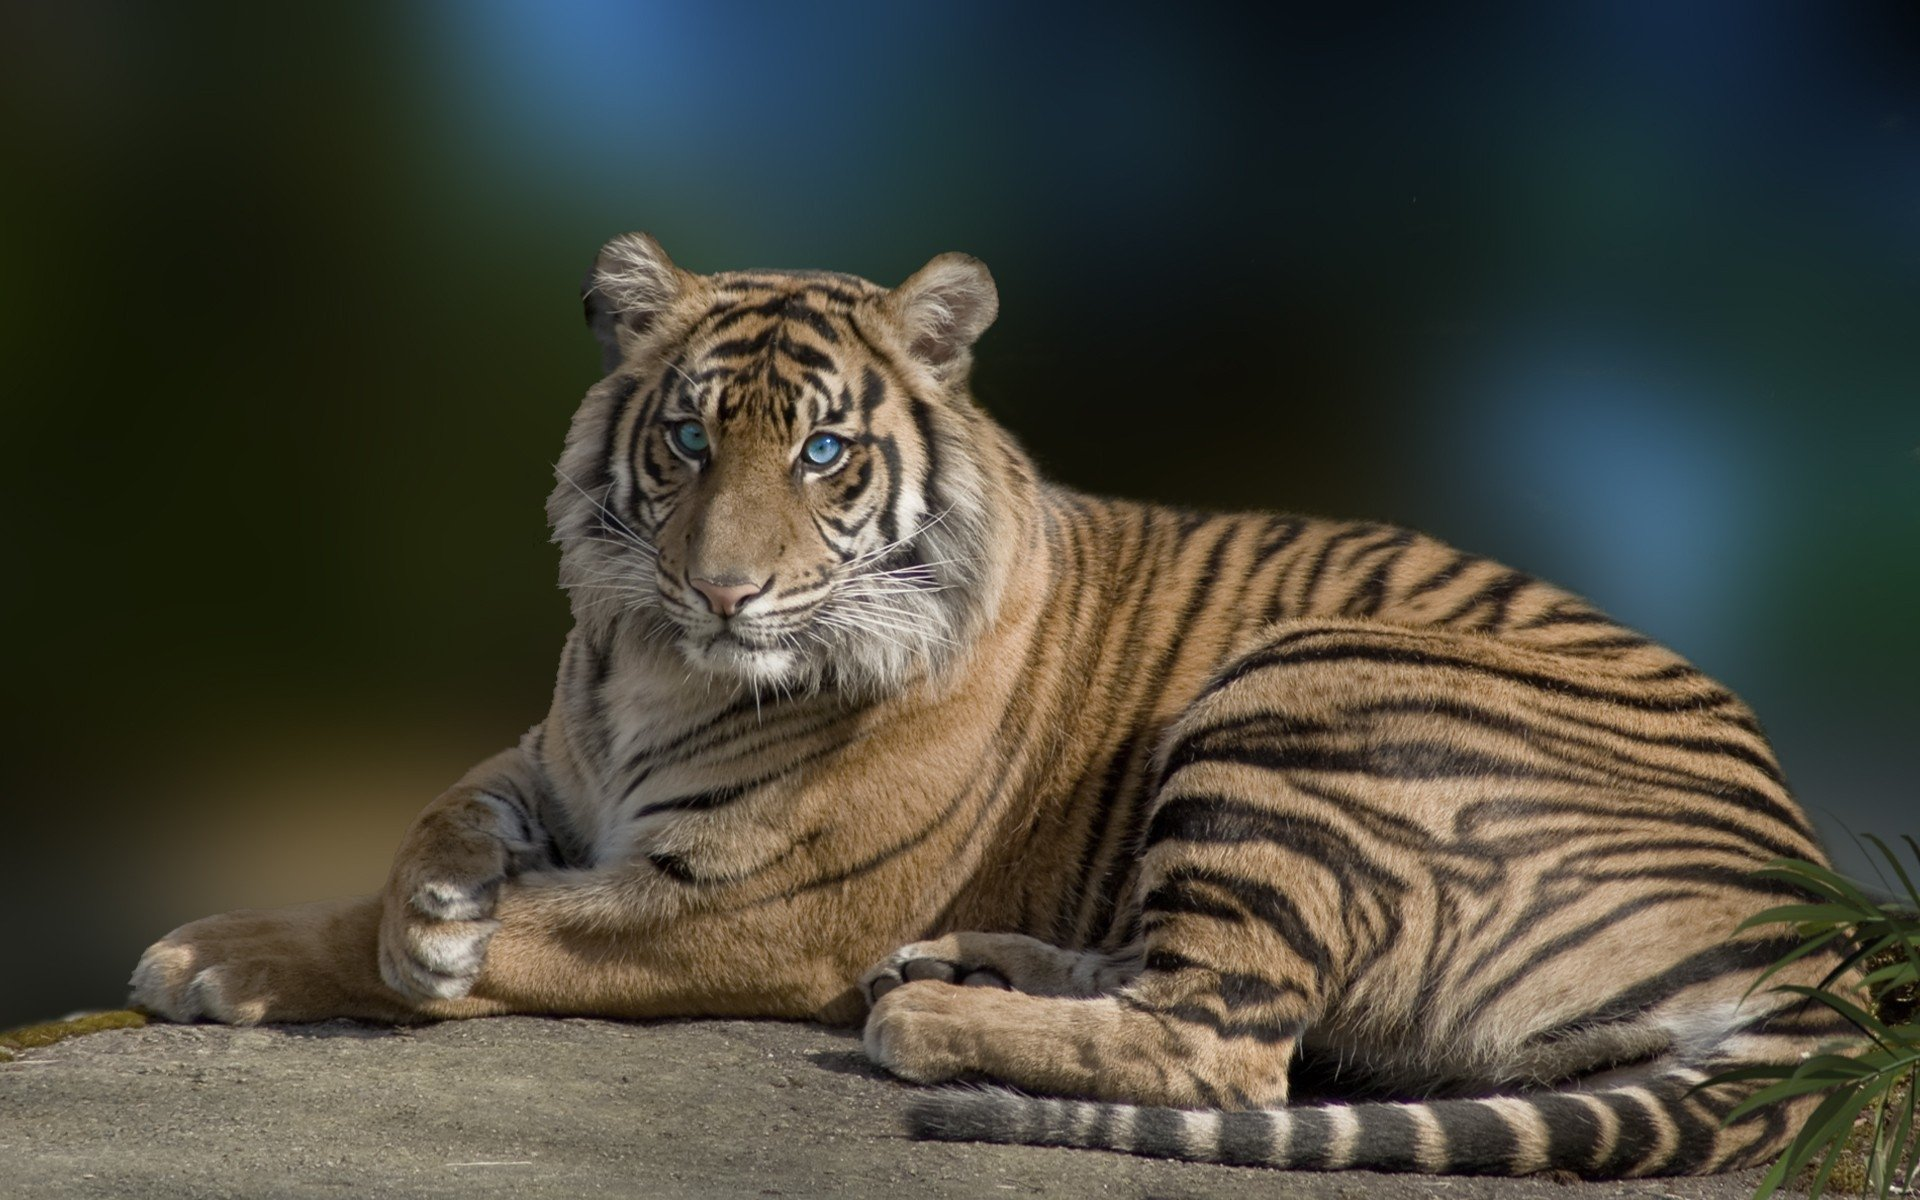 Cute Attitude Girl Wallpaper Download Tiger With Blue Eyes Full Hd Wallpaper And Background